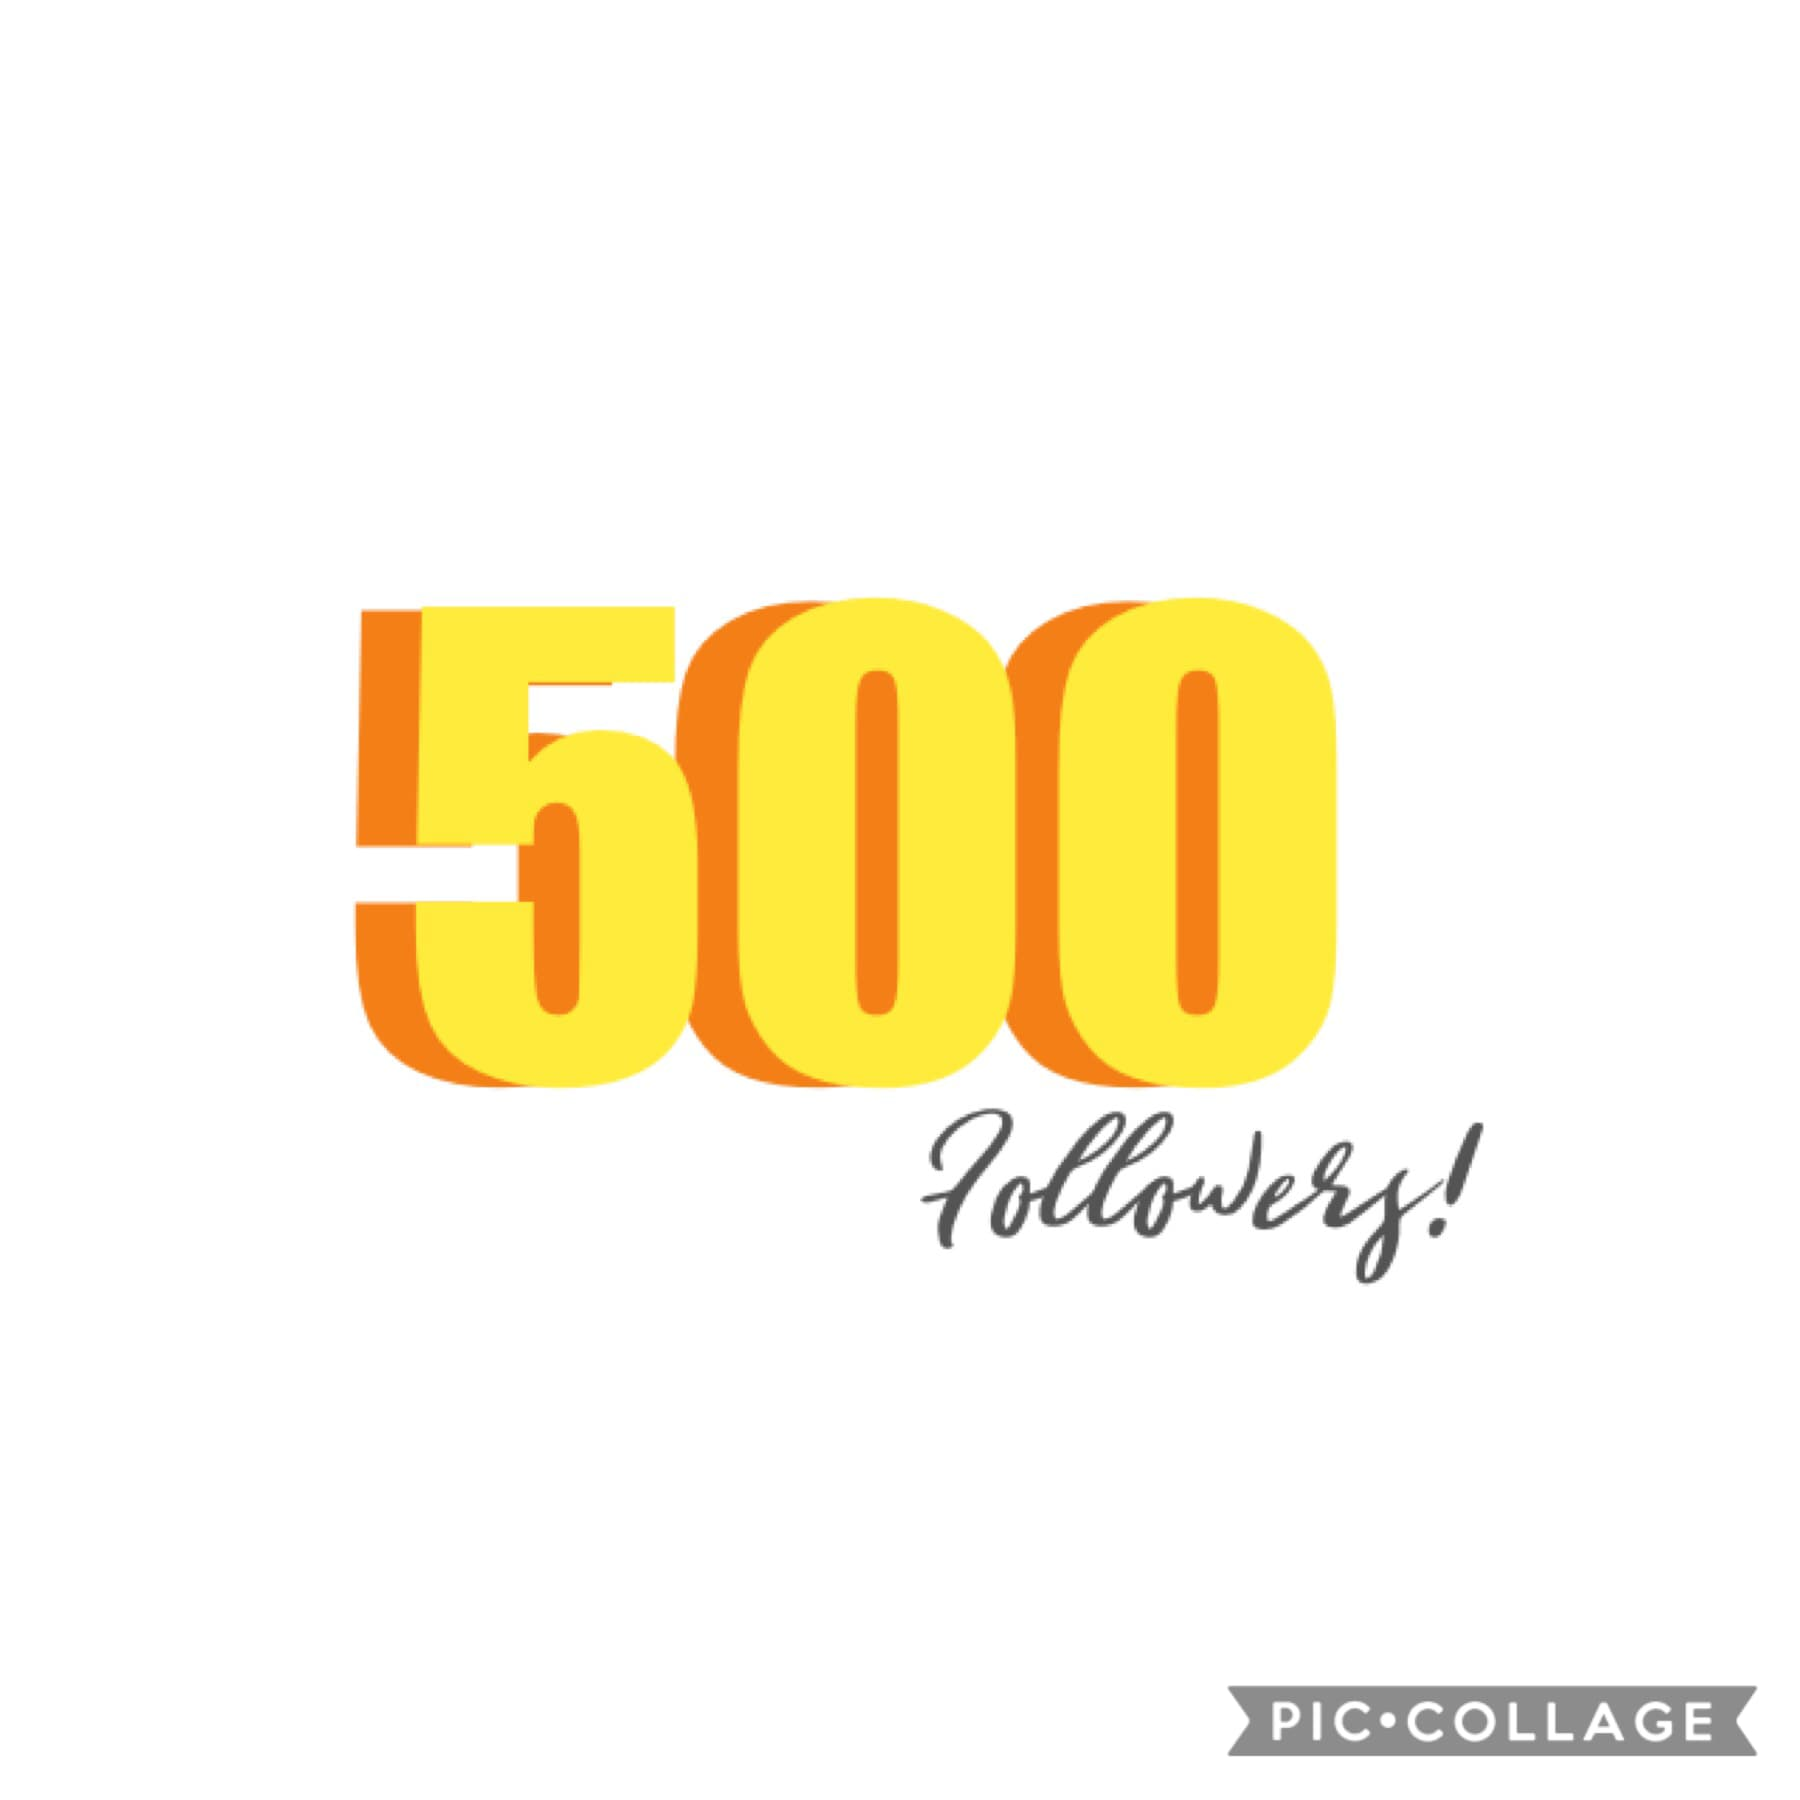 Thank u so much for 500! I love everyone one of you so much and I'm so thankful! 🥰